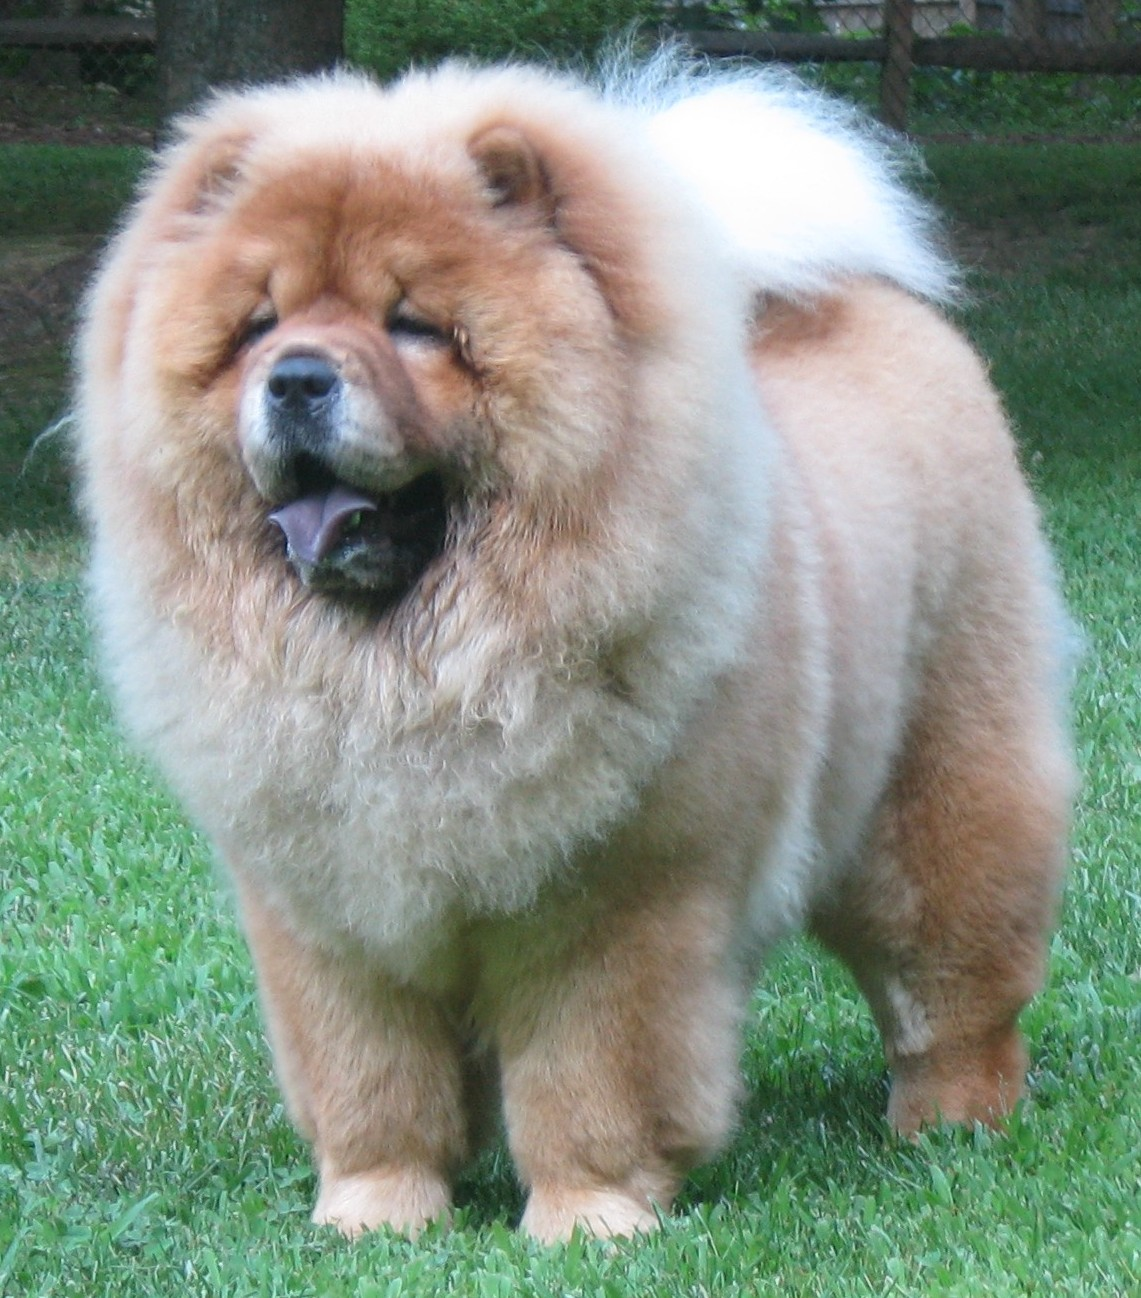 Baby Chow Chows | www.pixshark.com - Images Galleries With ...